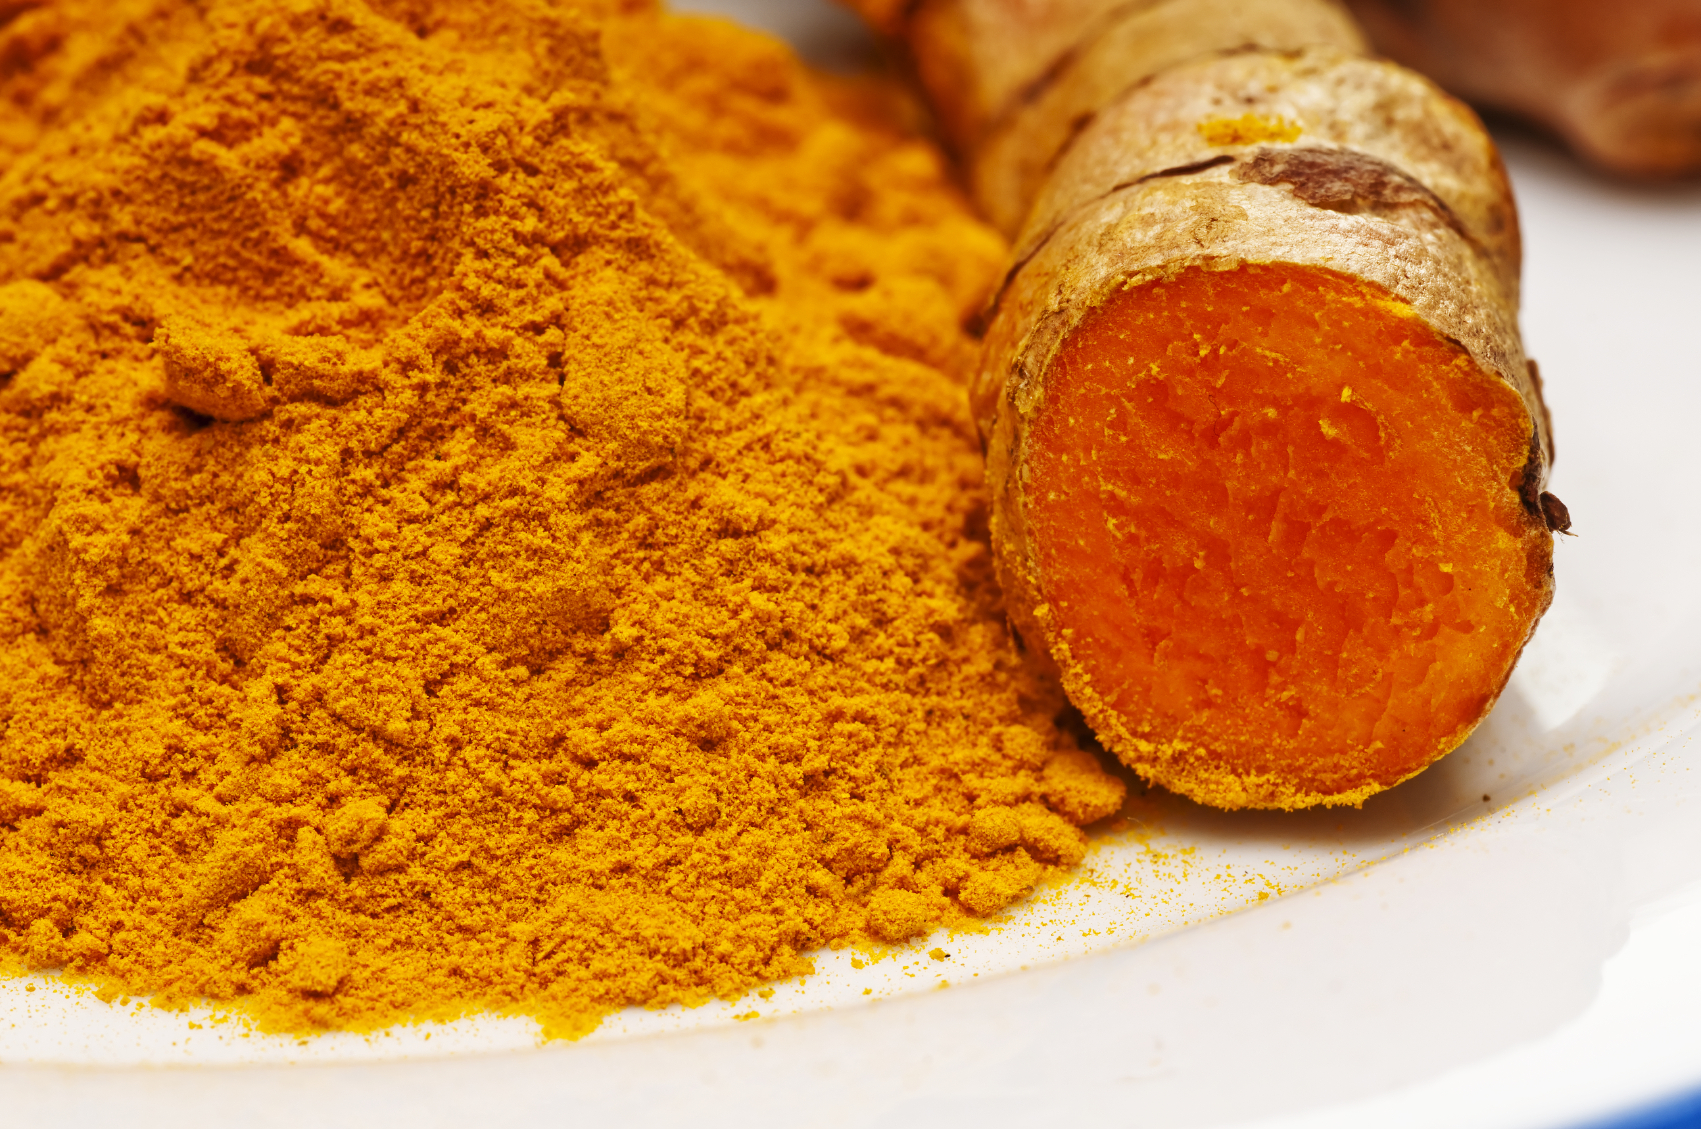 Eating this ancient Indian spice can help prevent Alzheimer's disease. But it can also help improve overall brain health…like memory, mood, and learning.